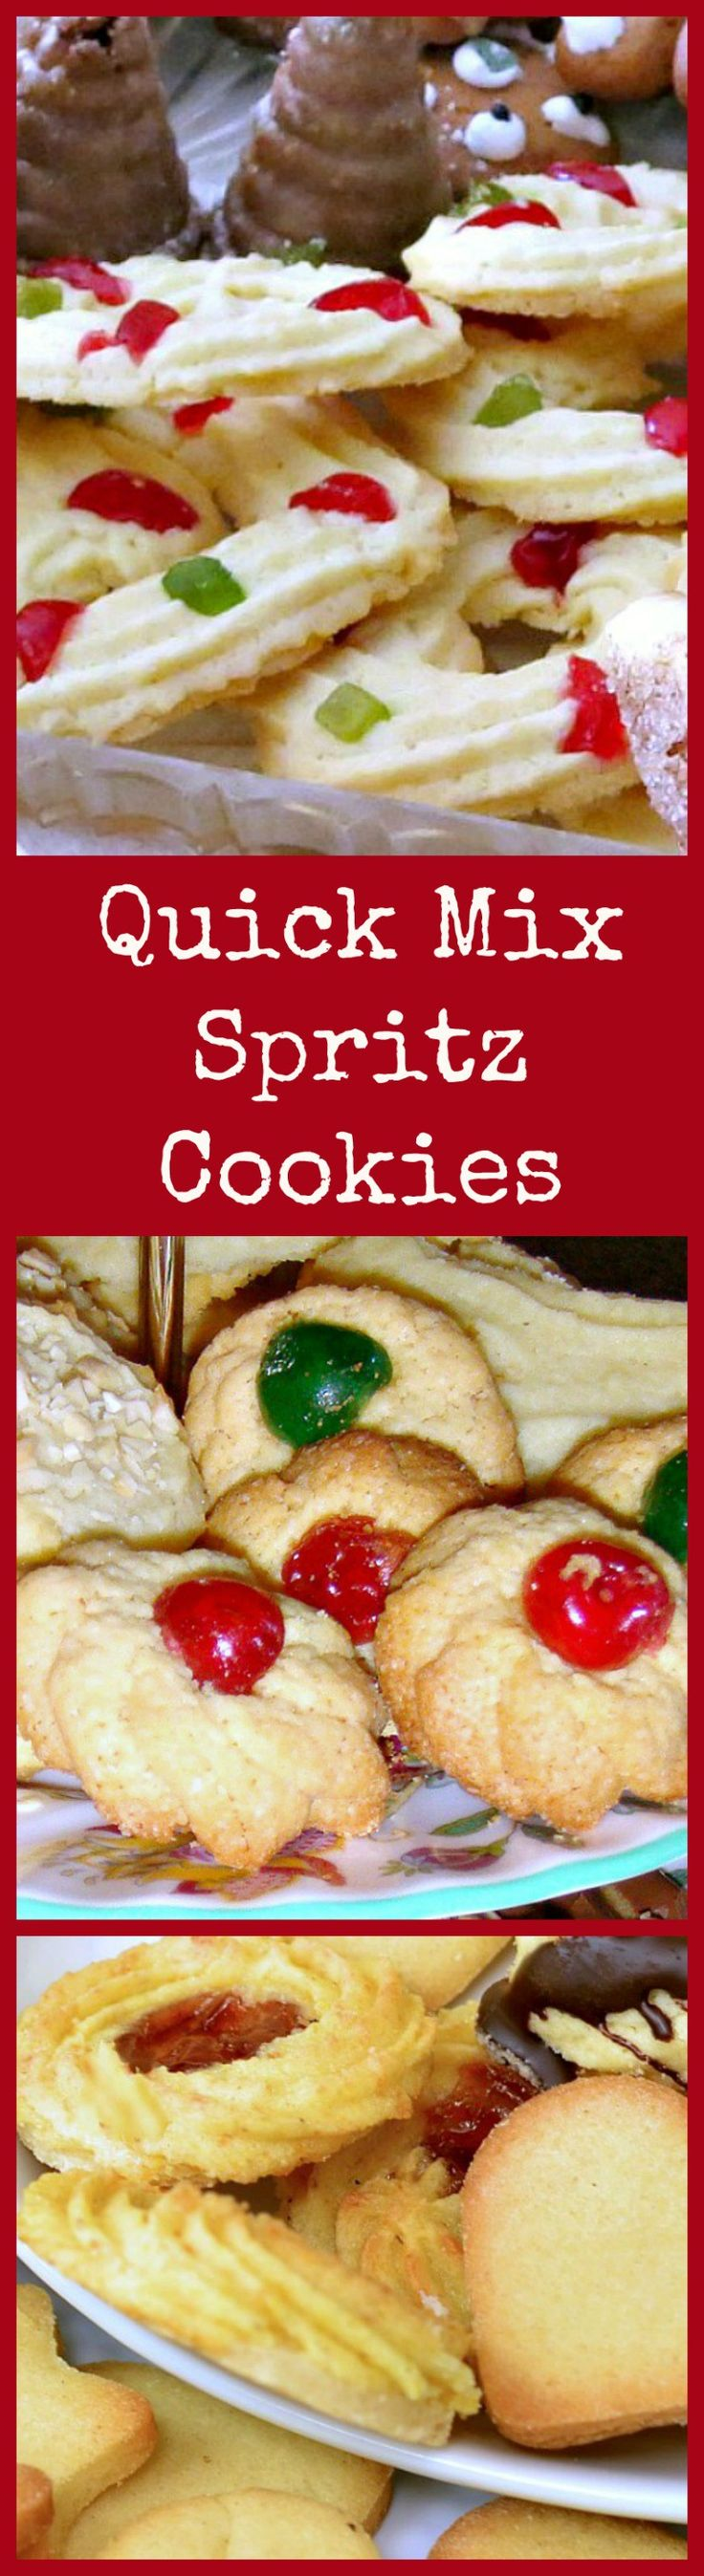 Quick Mix Spritz Cookies. These little cookies have a wonderful vanilla flavor and melt in your mouth. Easy to make! Get creative and make different shapes ready for Christmas!   Lovefoodies.com